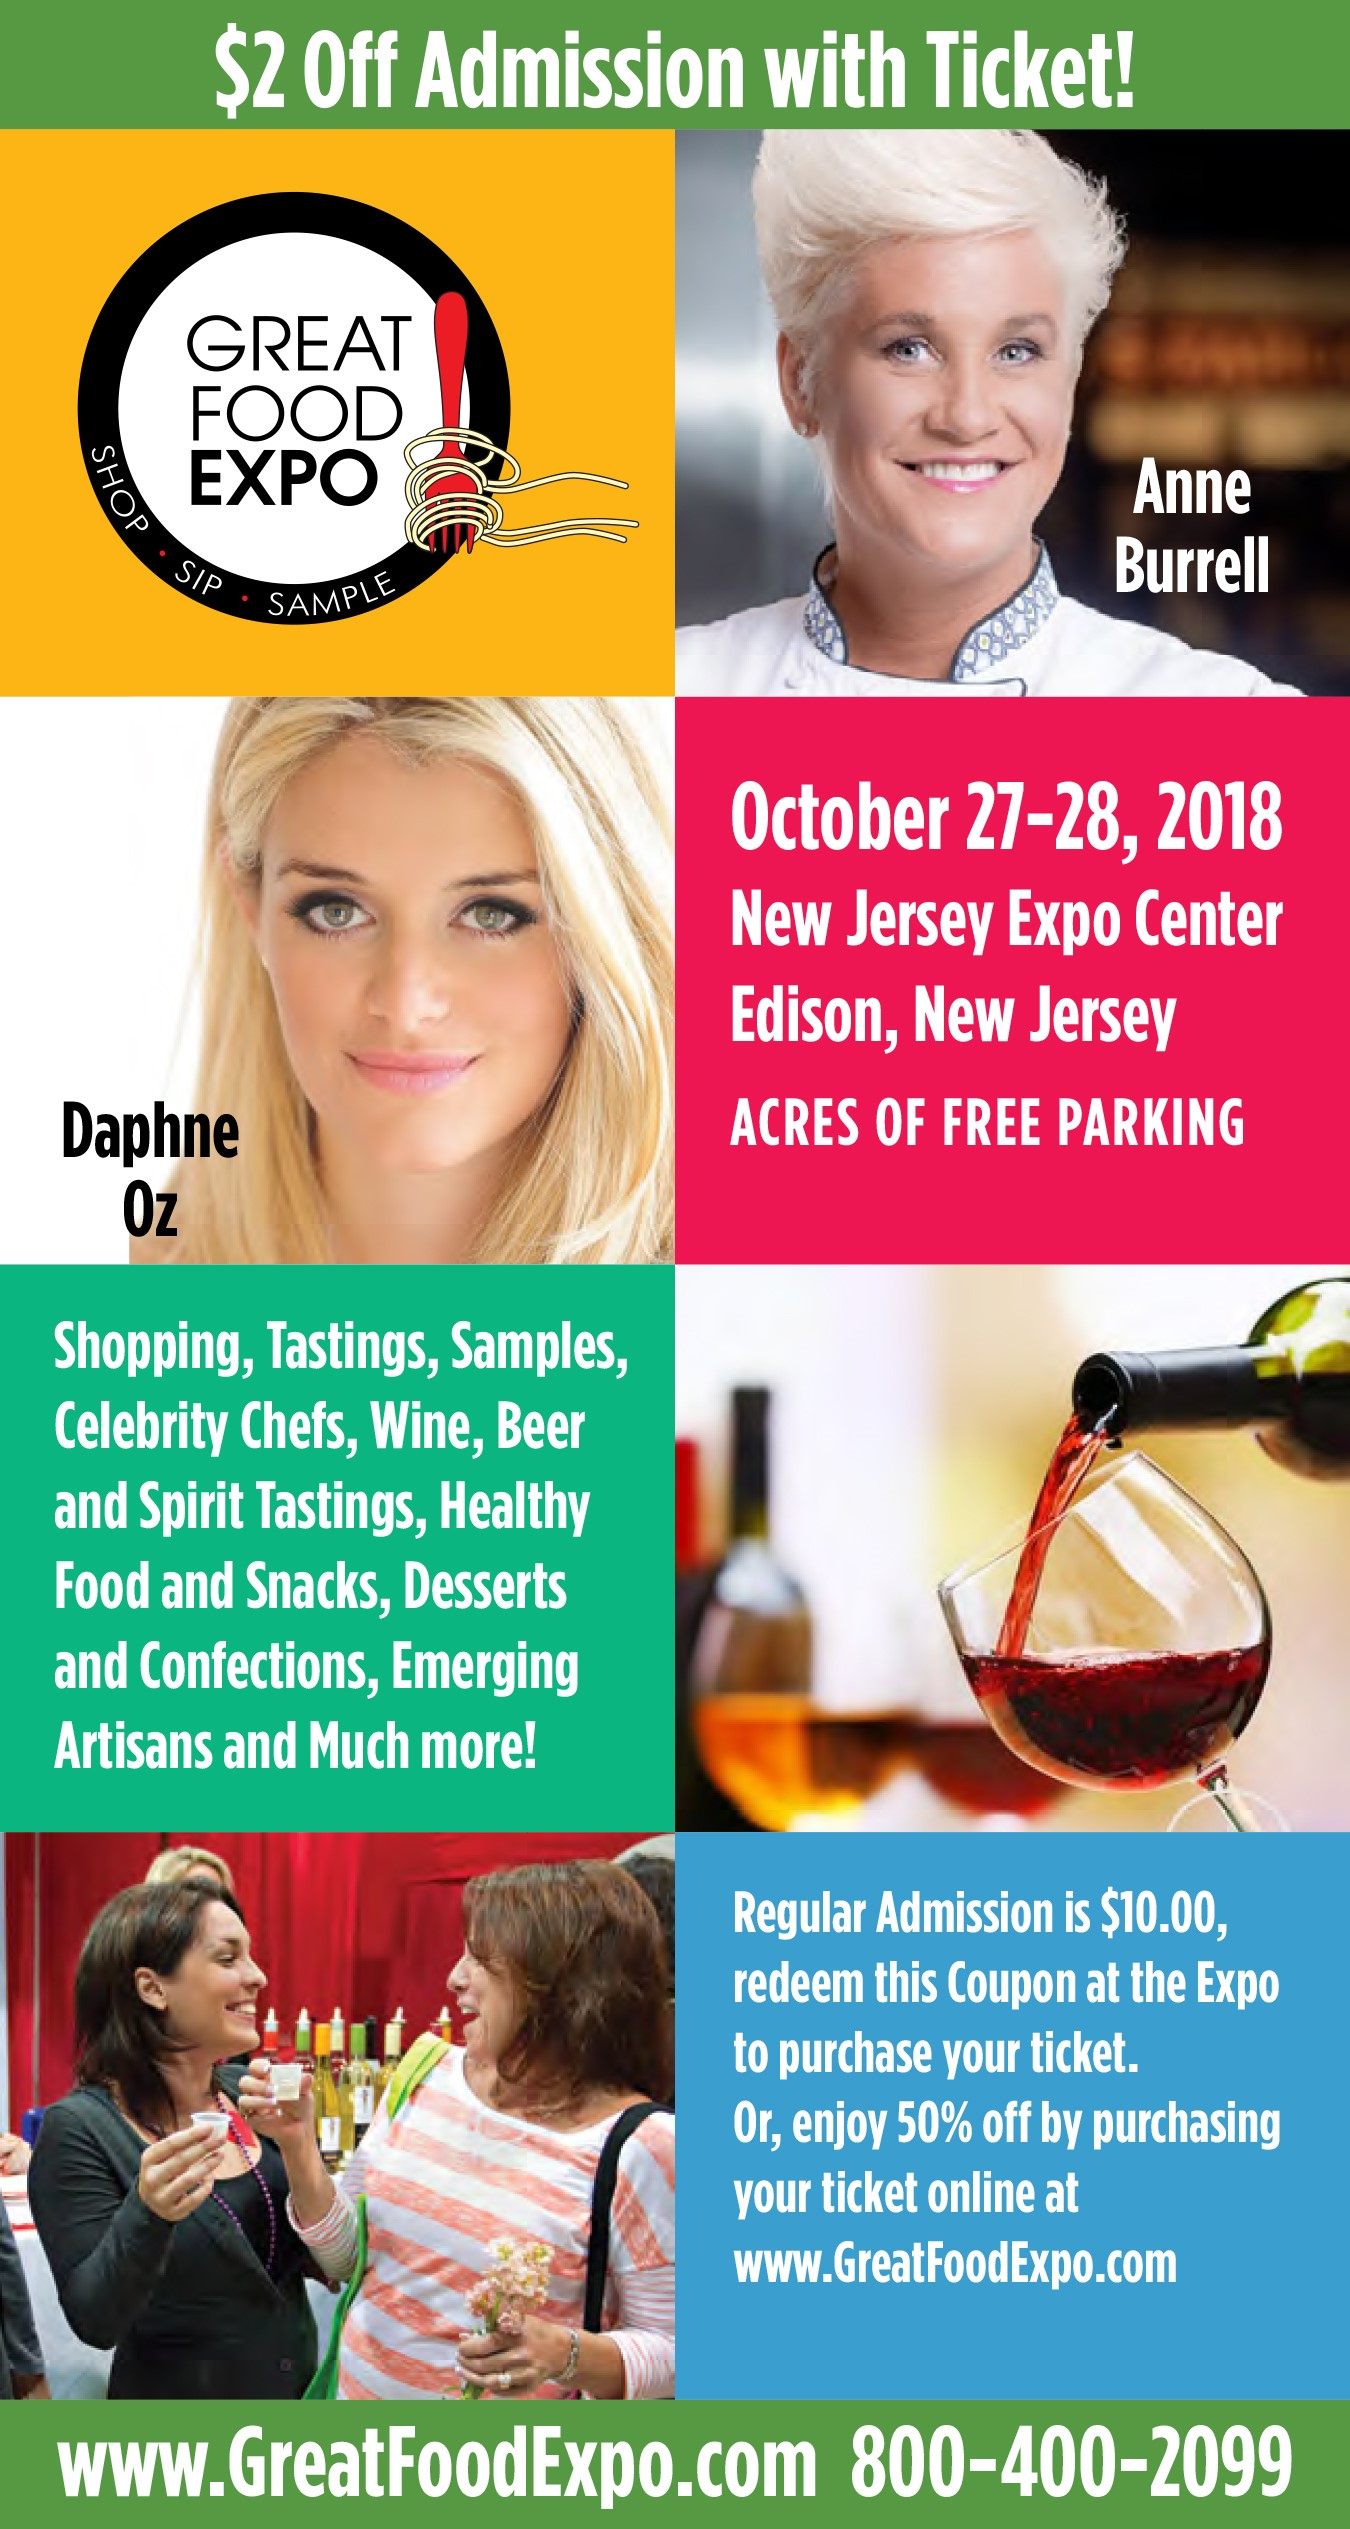 Great Food Expo Tickets